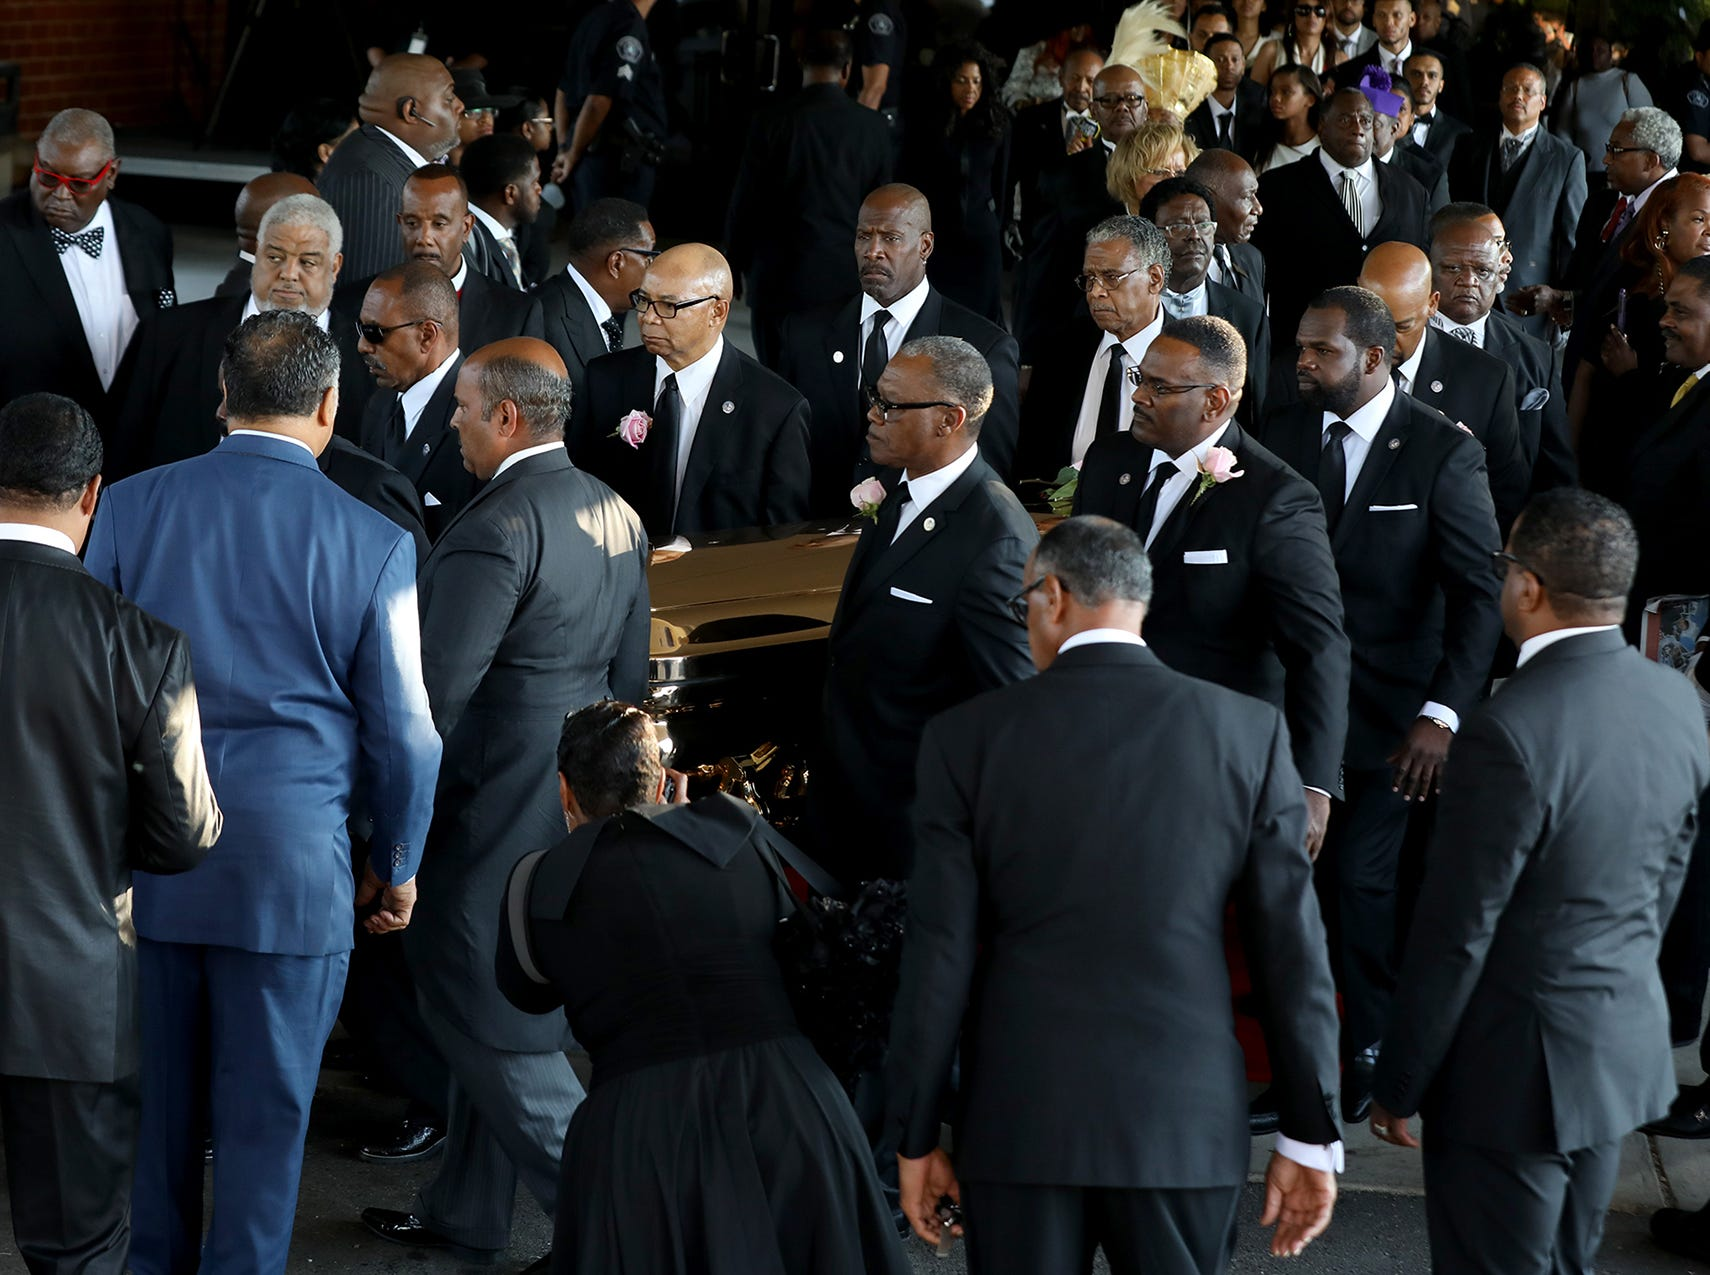 The casket of Aretha Franklin is moved out of the church at the end of her funeral at Greater Grace Temple in Detroit on Friday, August 31, 2018.